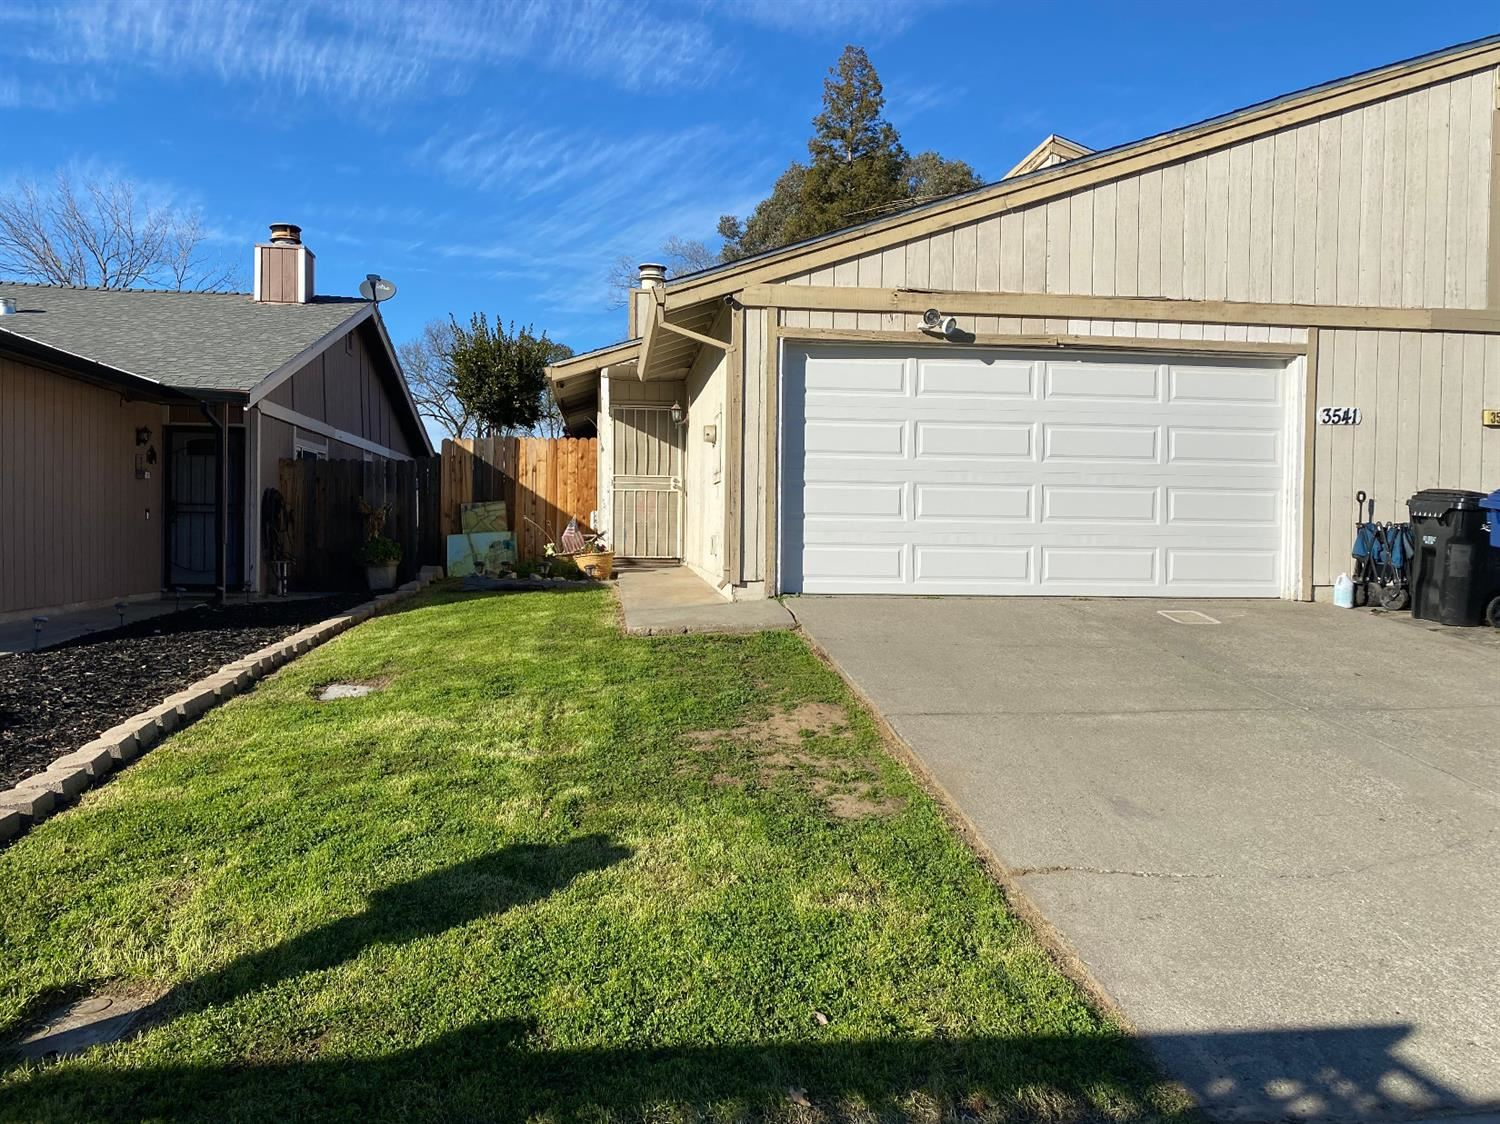 Photo of 3541 Treleaven Court, Antelope, CA 95843 (MLS # 221012273)